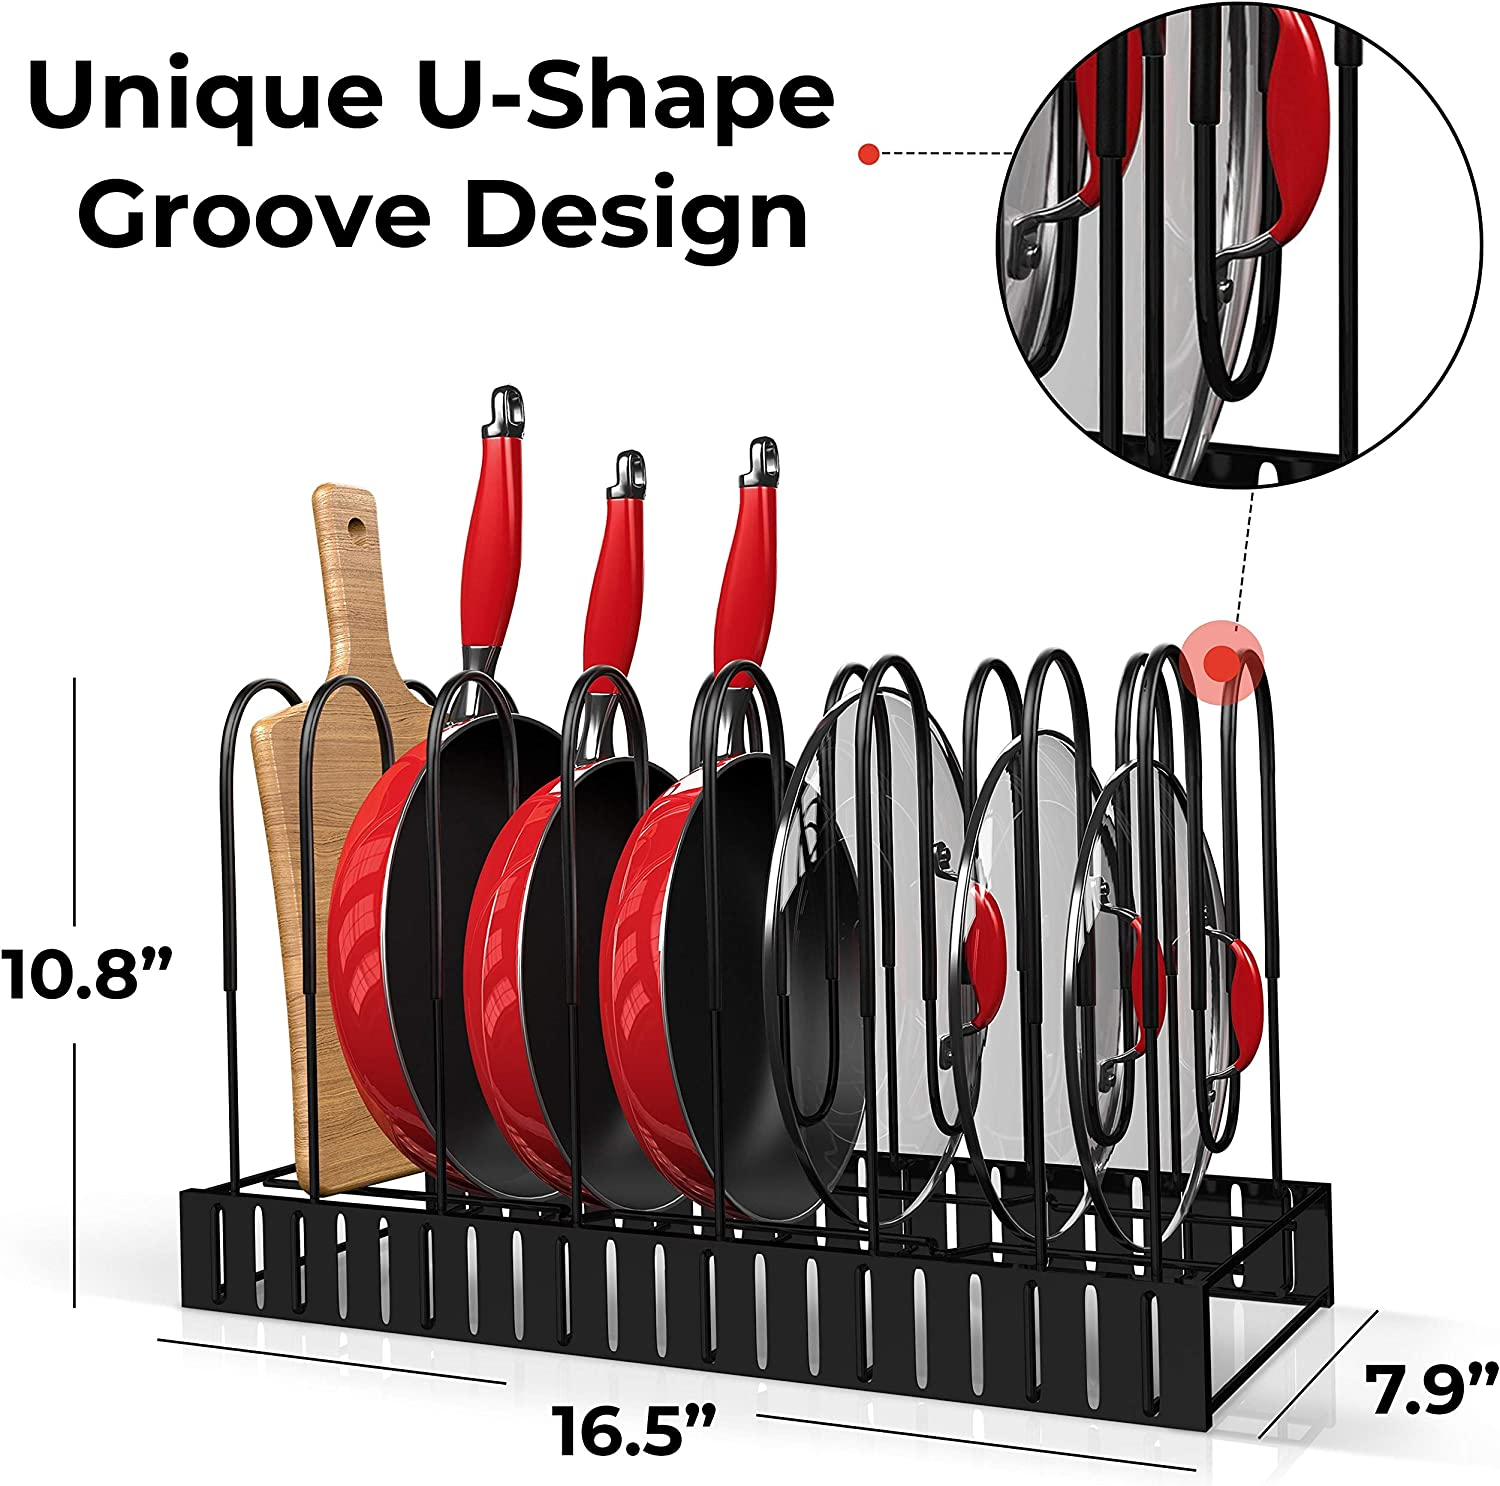 Pot and Pan Organizer for Cabinet, Adjustable 8 Non-Slip Tiers Pot Rack Organizer with 3 DIY Methods, Kitchen Under Cabinet Organizer Rack for Pots and Pans, Black Steel Cookware Organizer (UPGRADED): Kitchen & Dining